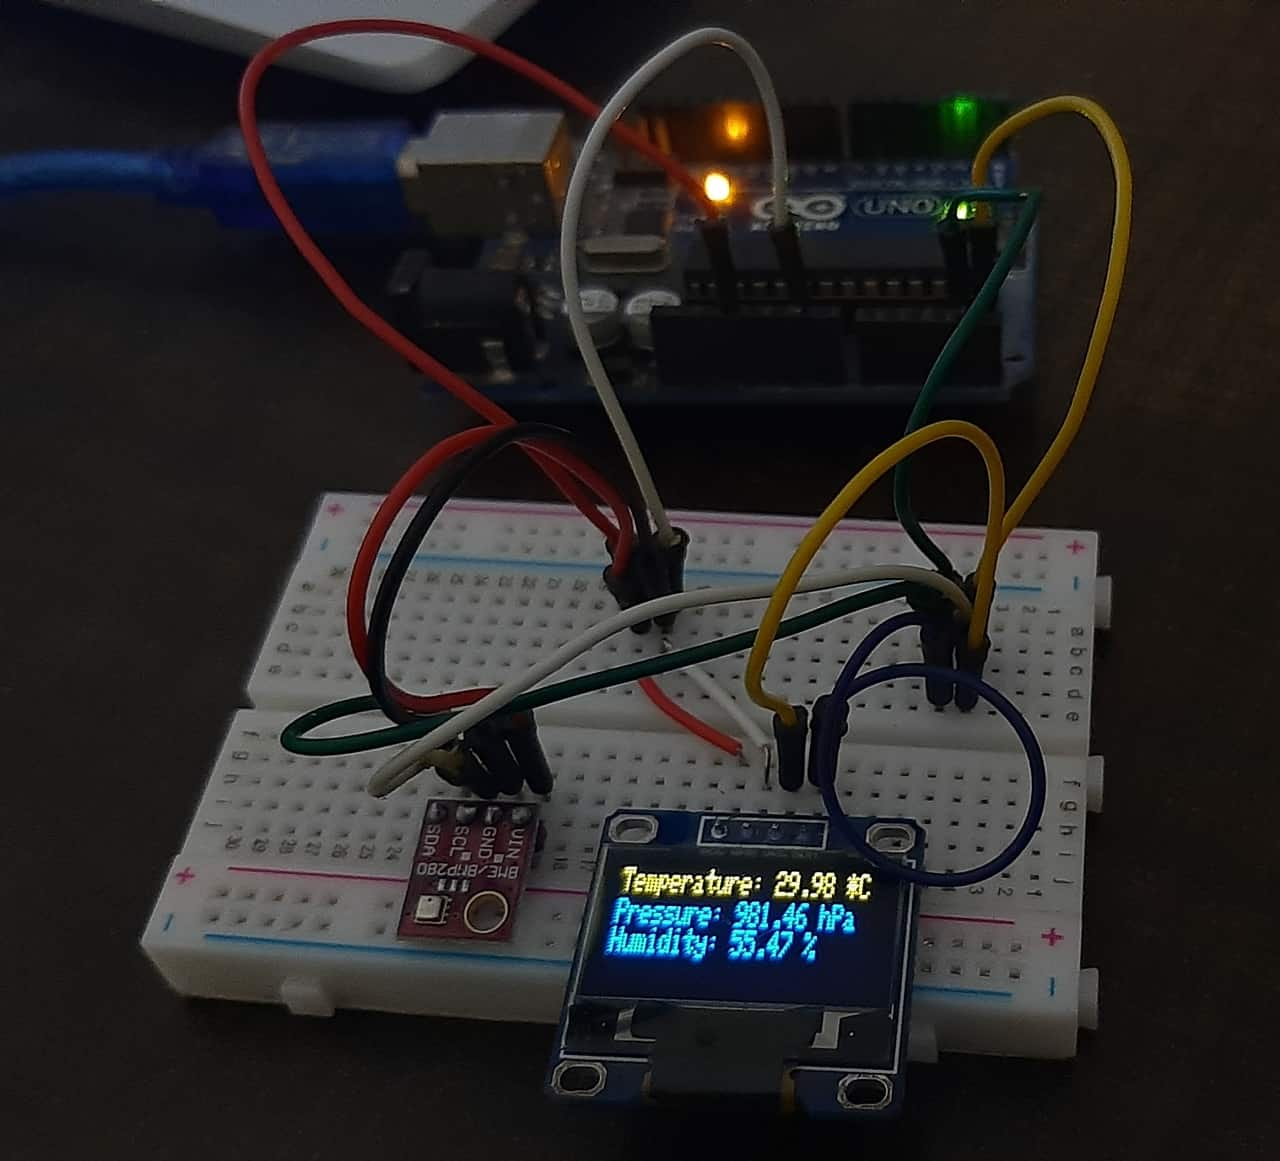 BME280 with Arduino and OLED